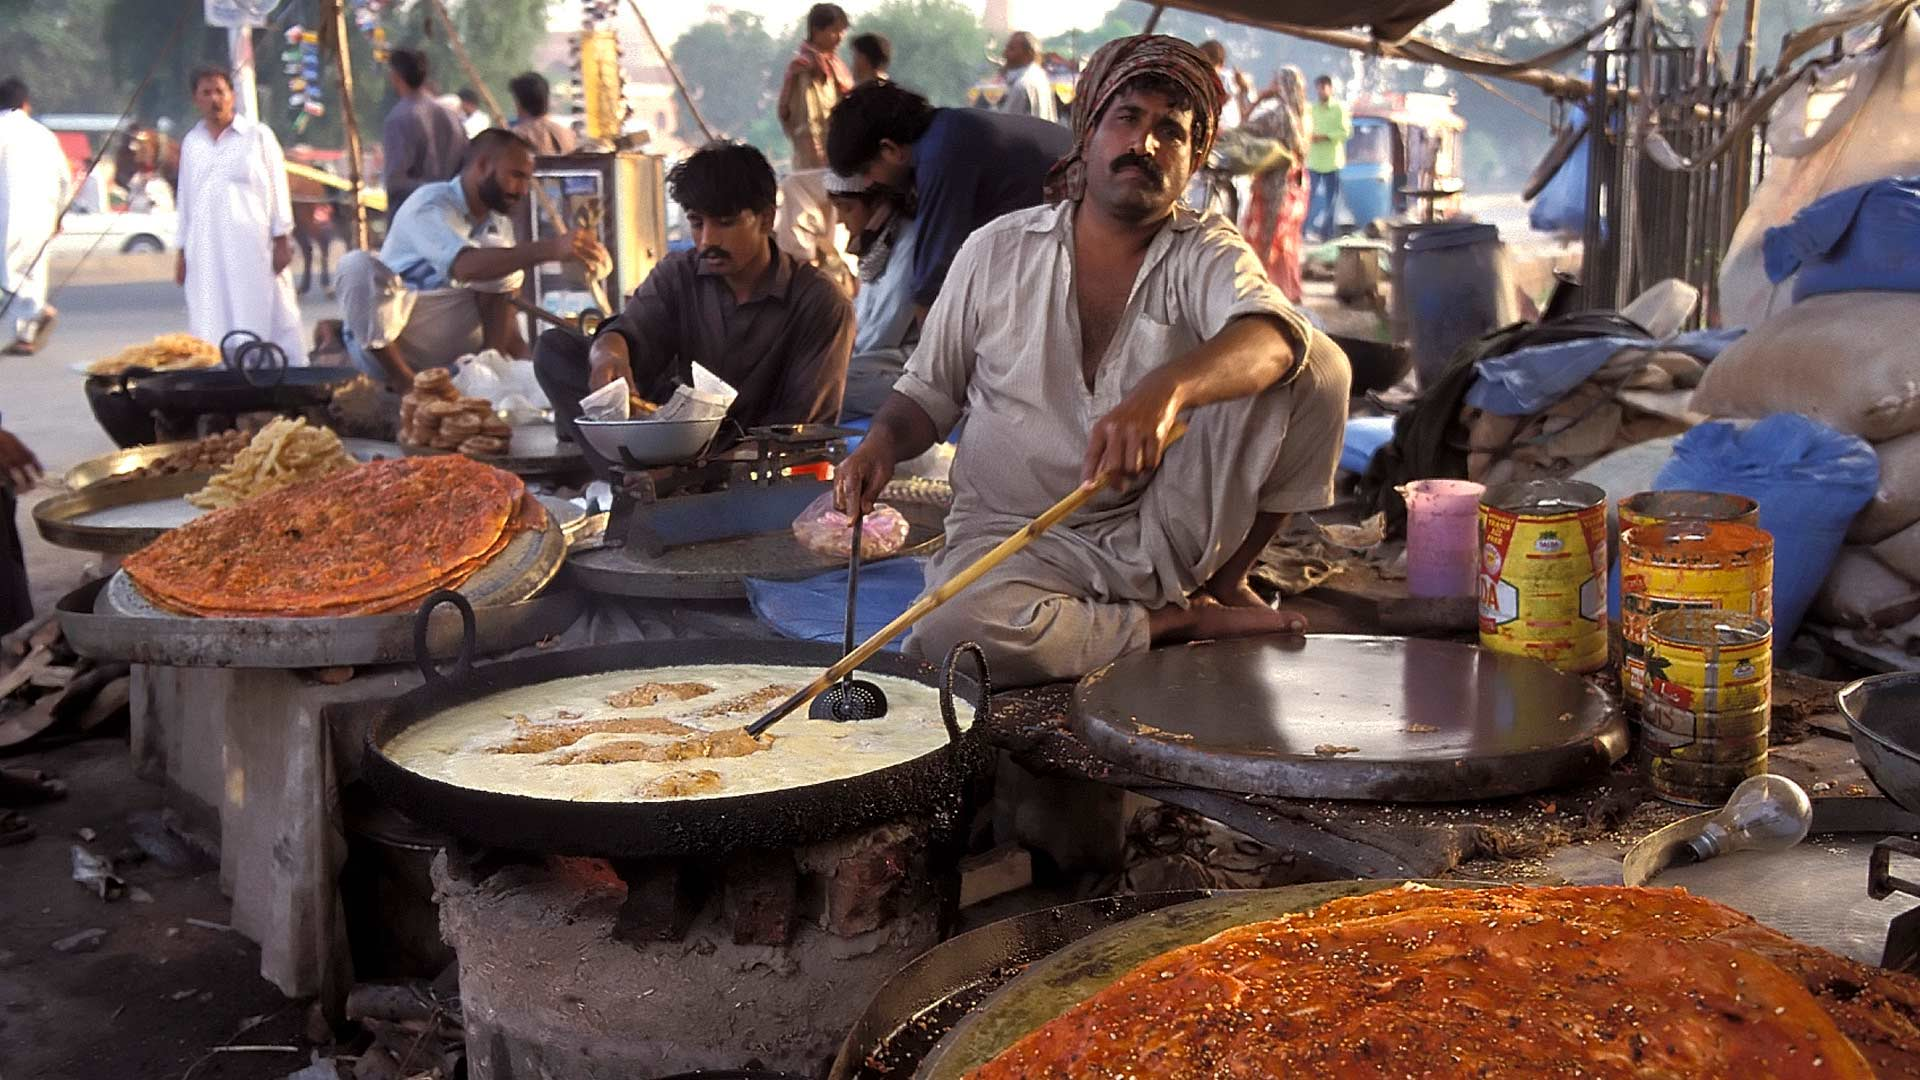 Punjabi food vendor, Lahore, Punjab, Pakistan